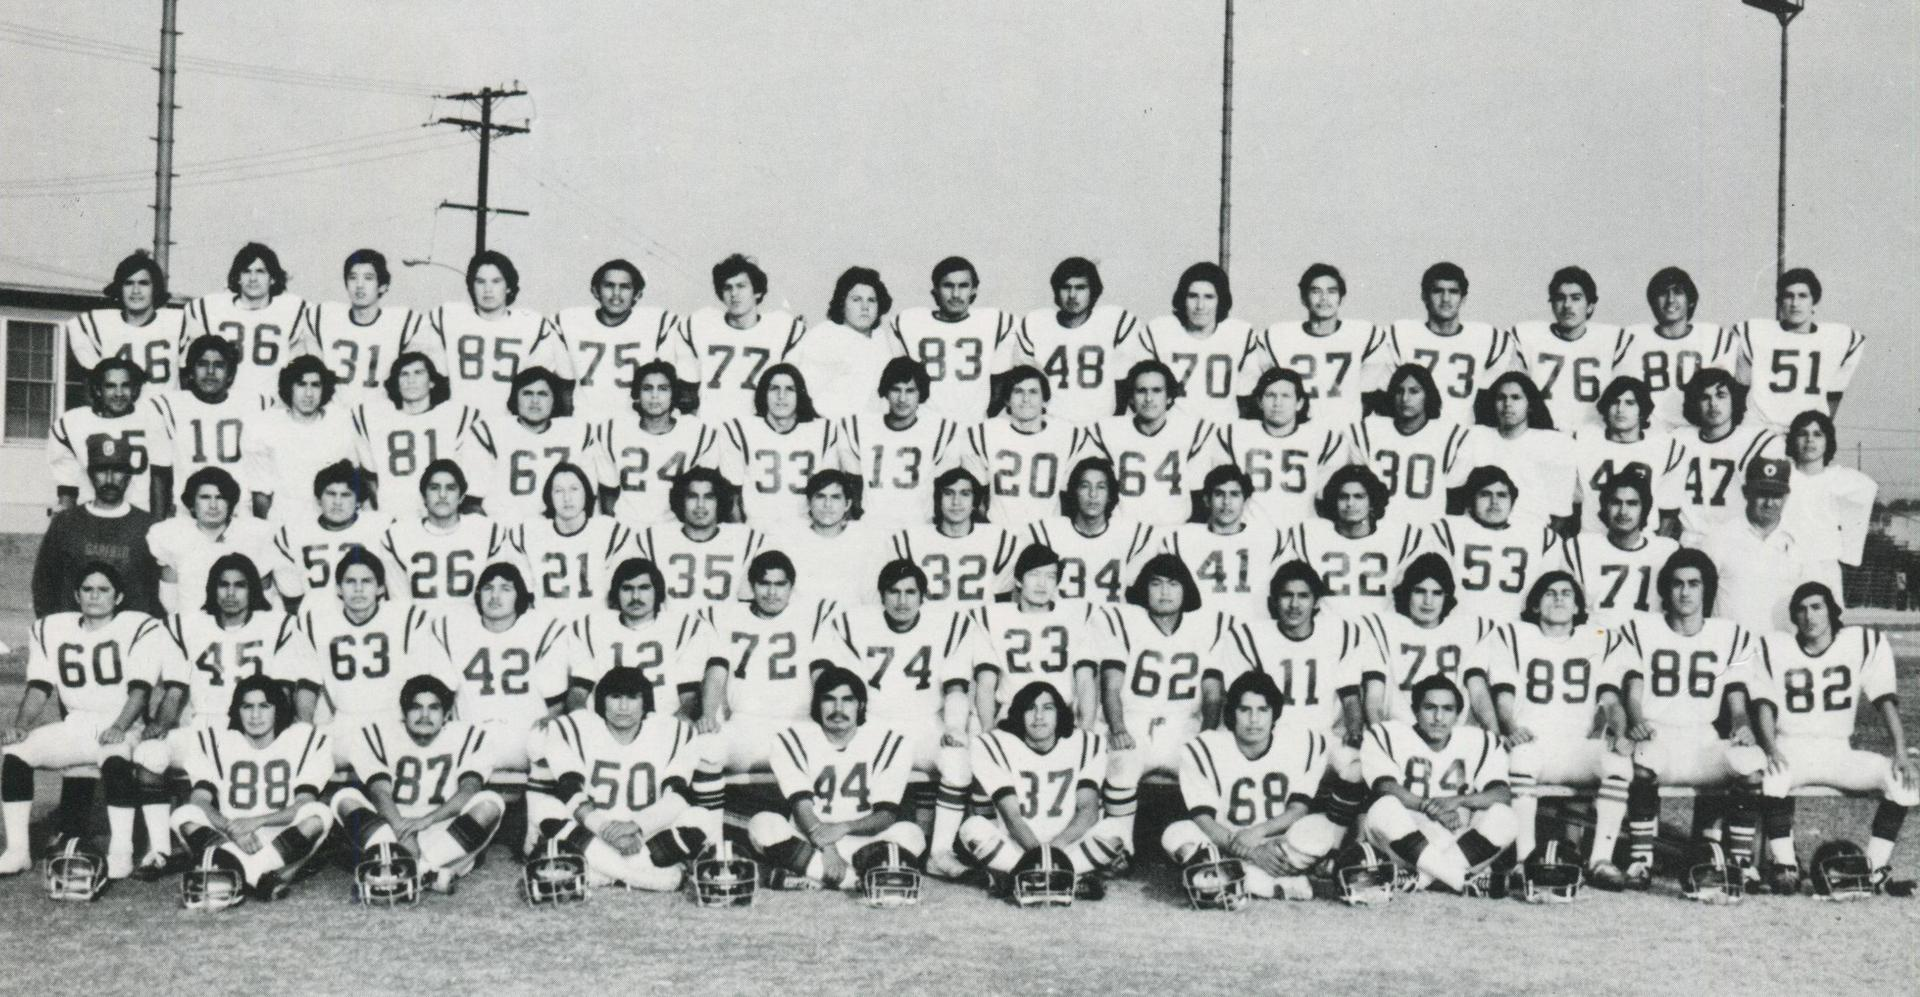 1974 B Football Team with Coach Hastings